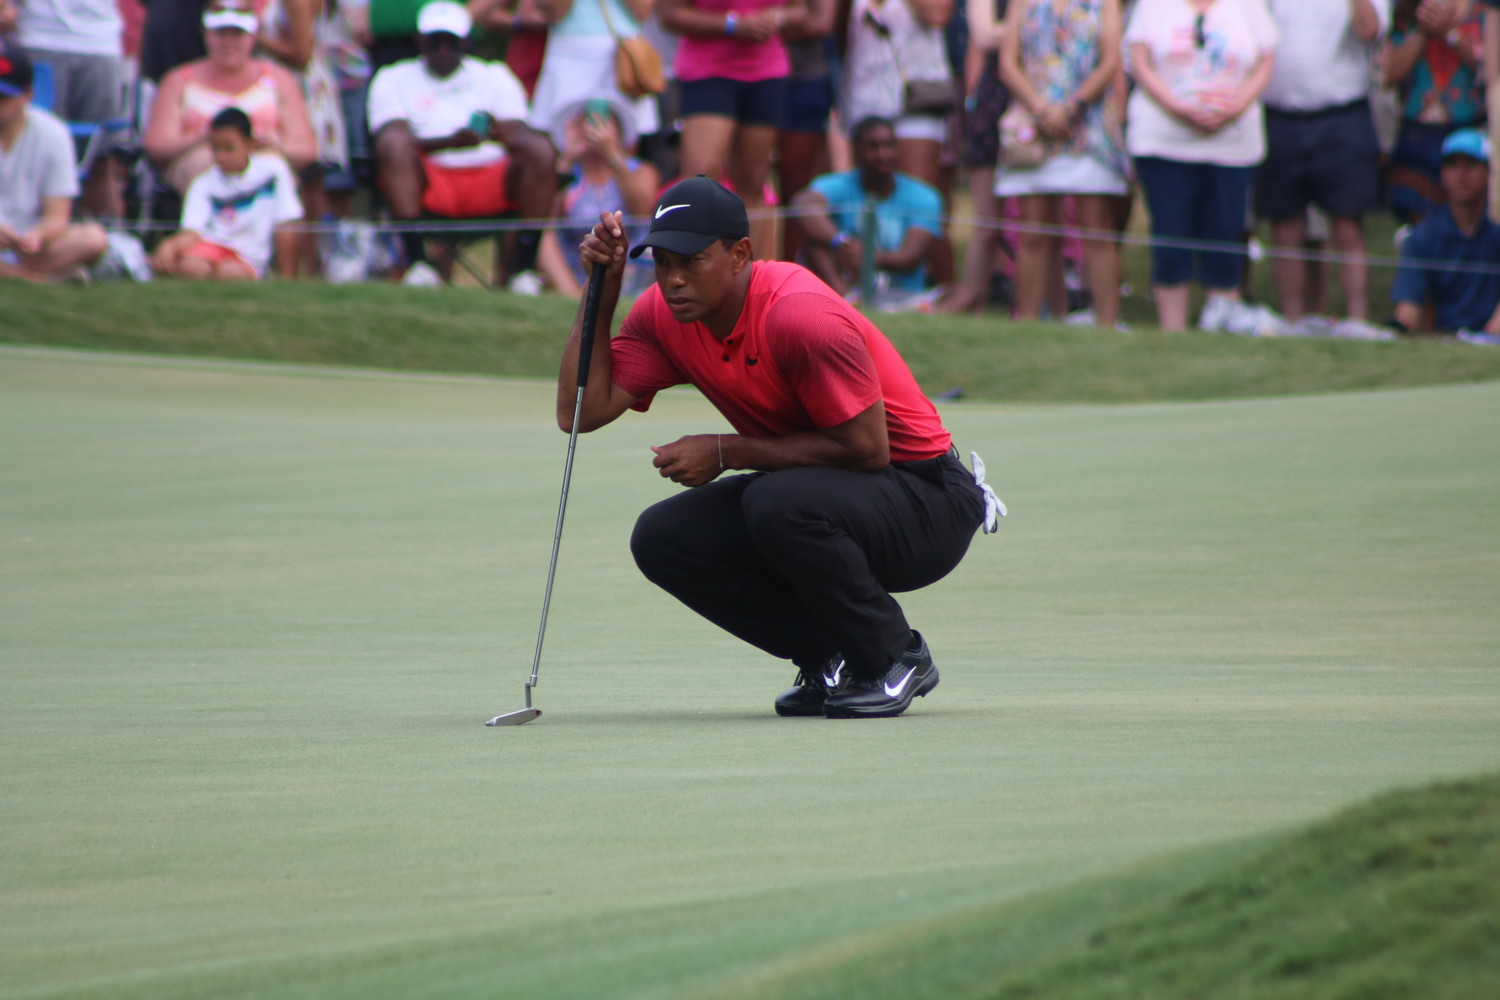 Tiger Woods eyes up a shot at THE PLAYERS Championship 2018 in Ponte Vedra Beach.